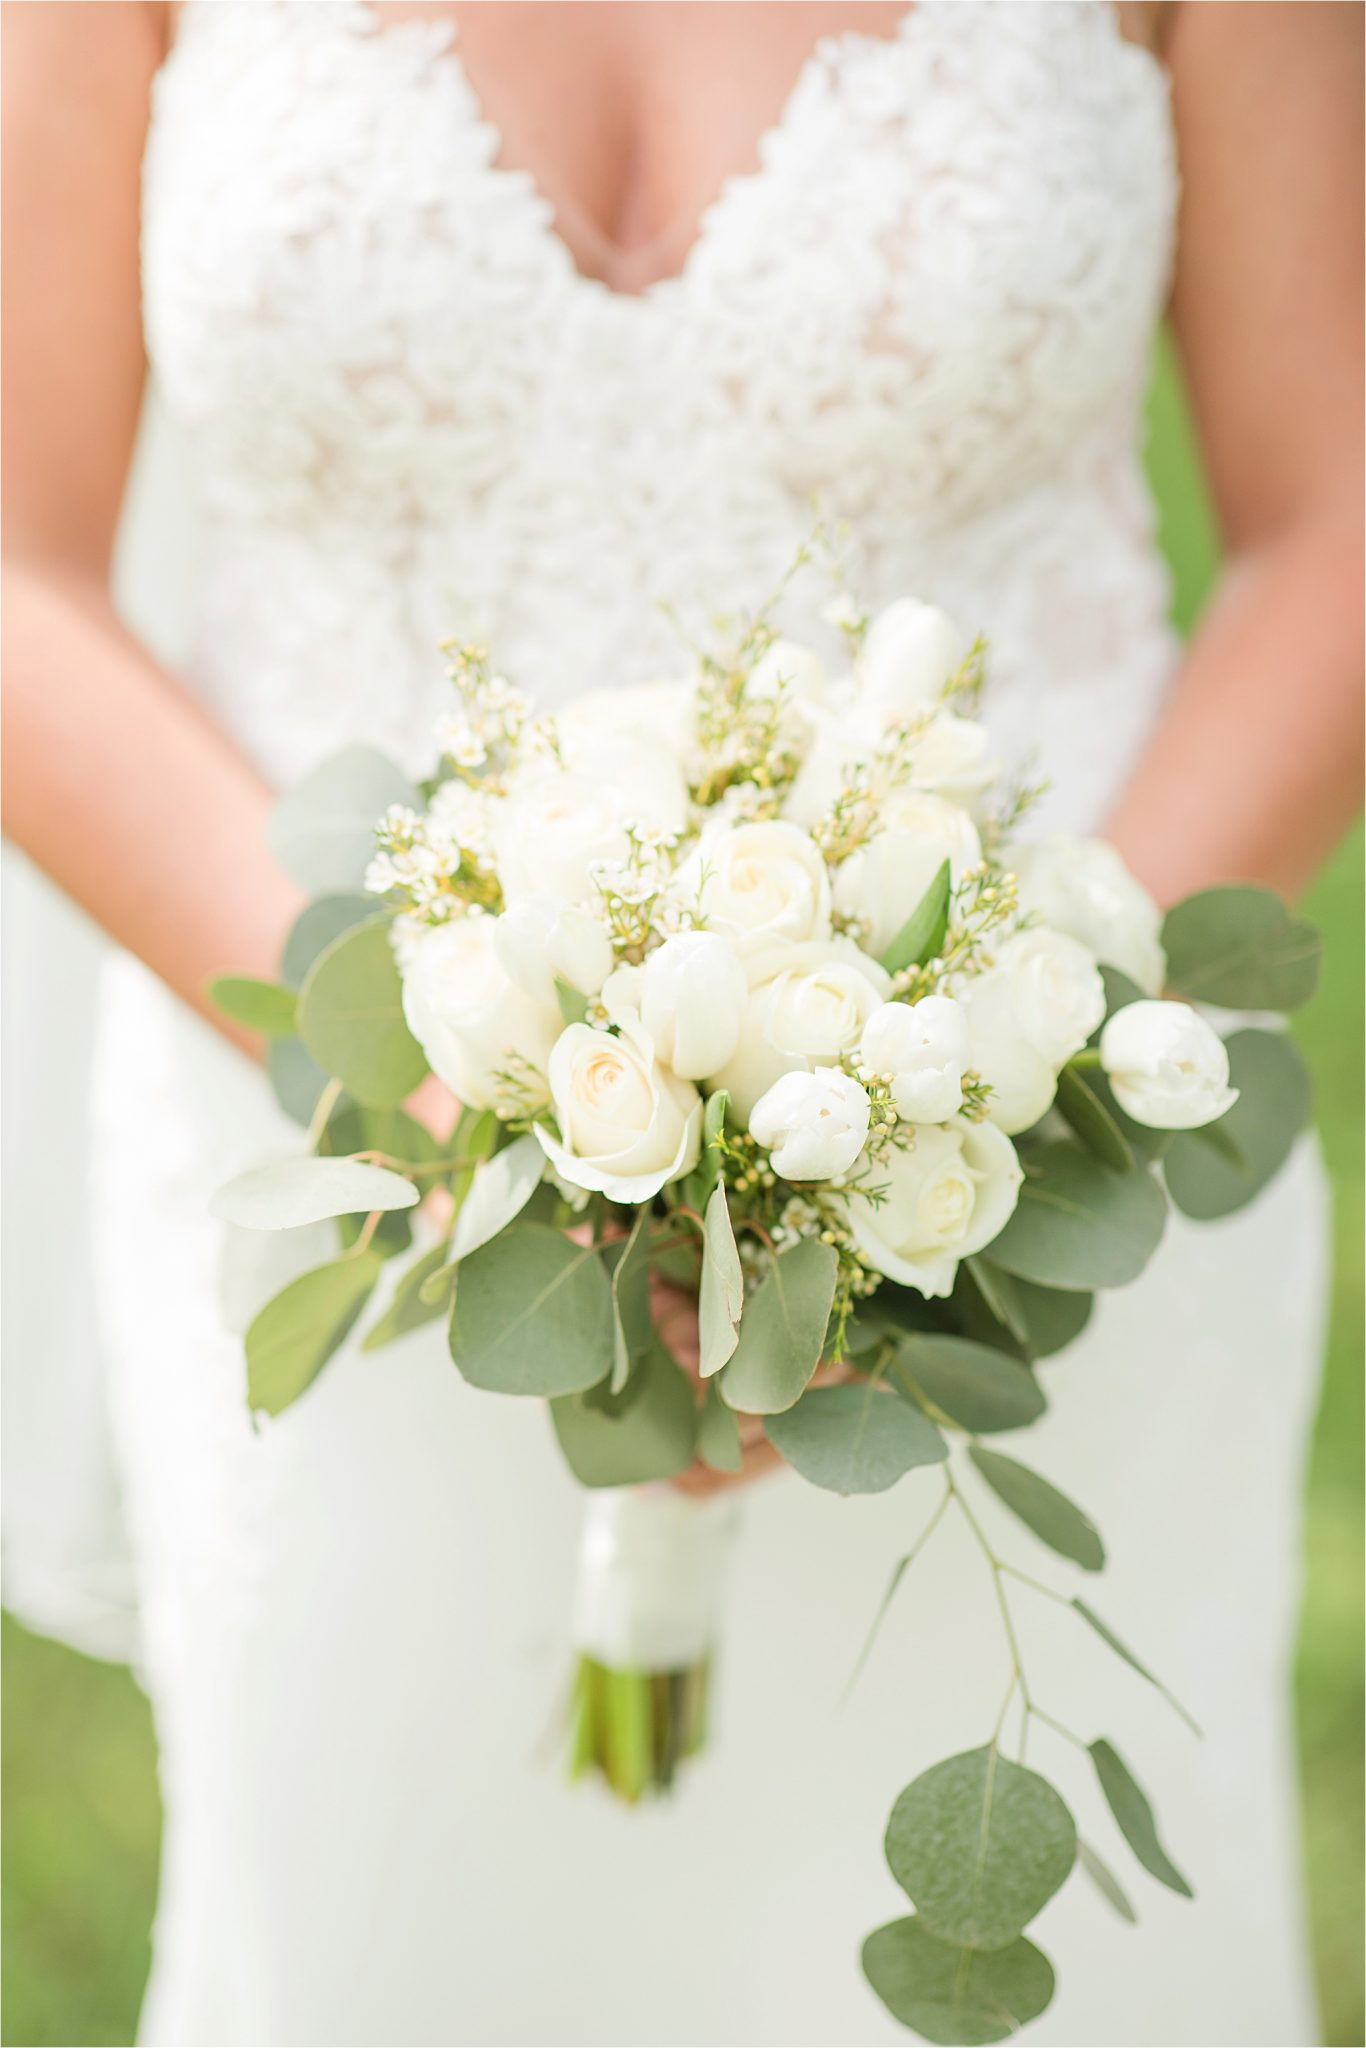 Hedge Farm Wedding, Alabama Wedding Photographer, Barn Wedding, Wedding florals, Neutrals